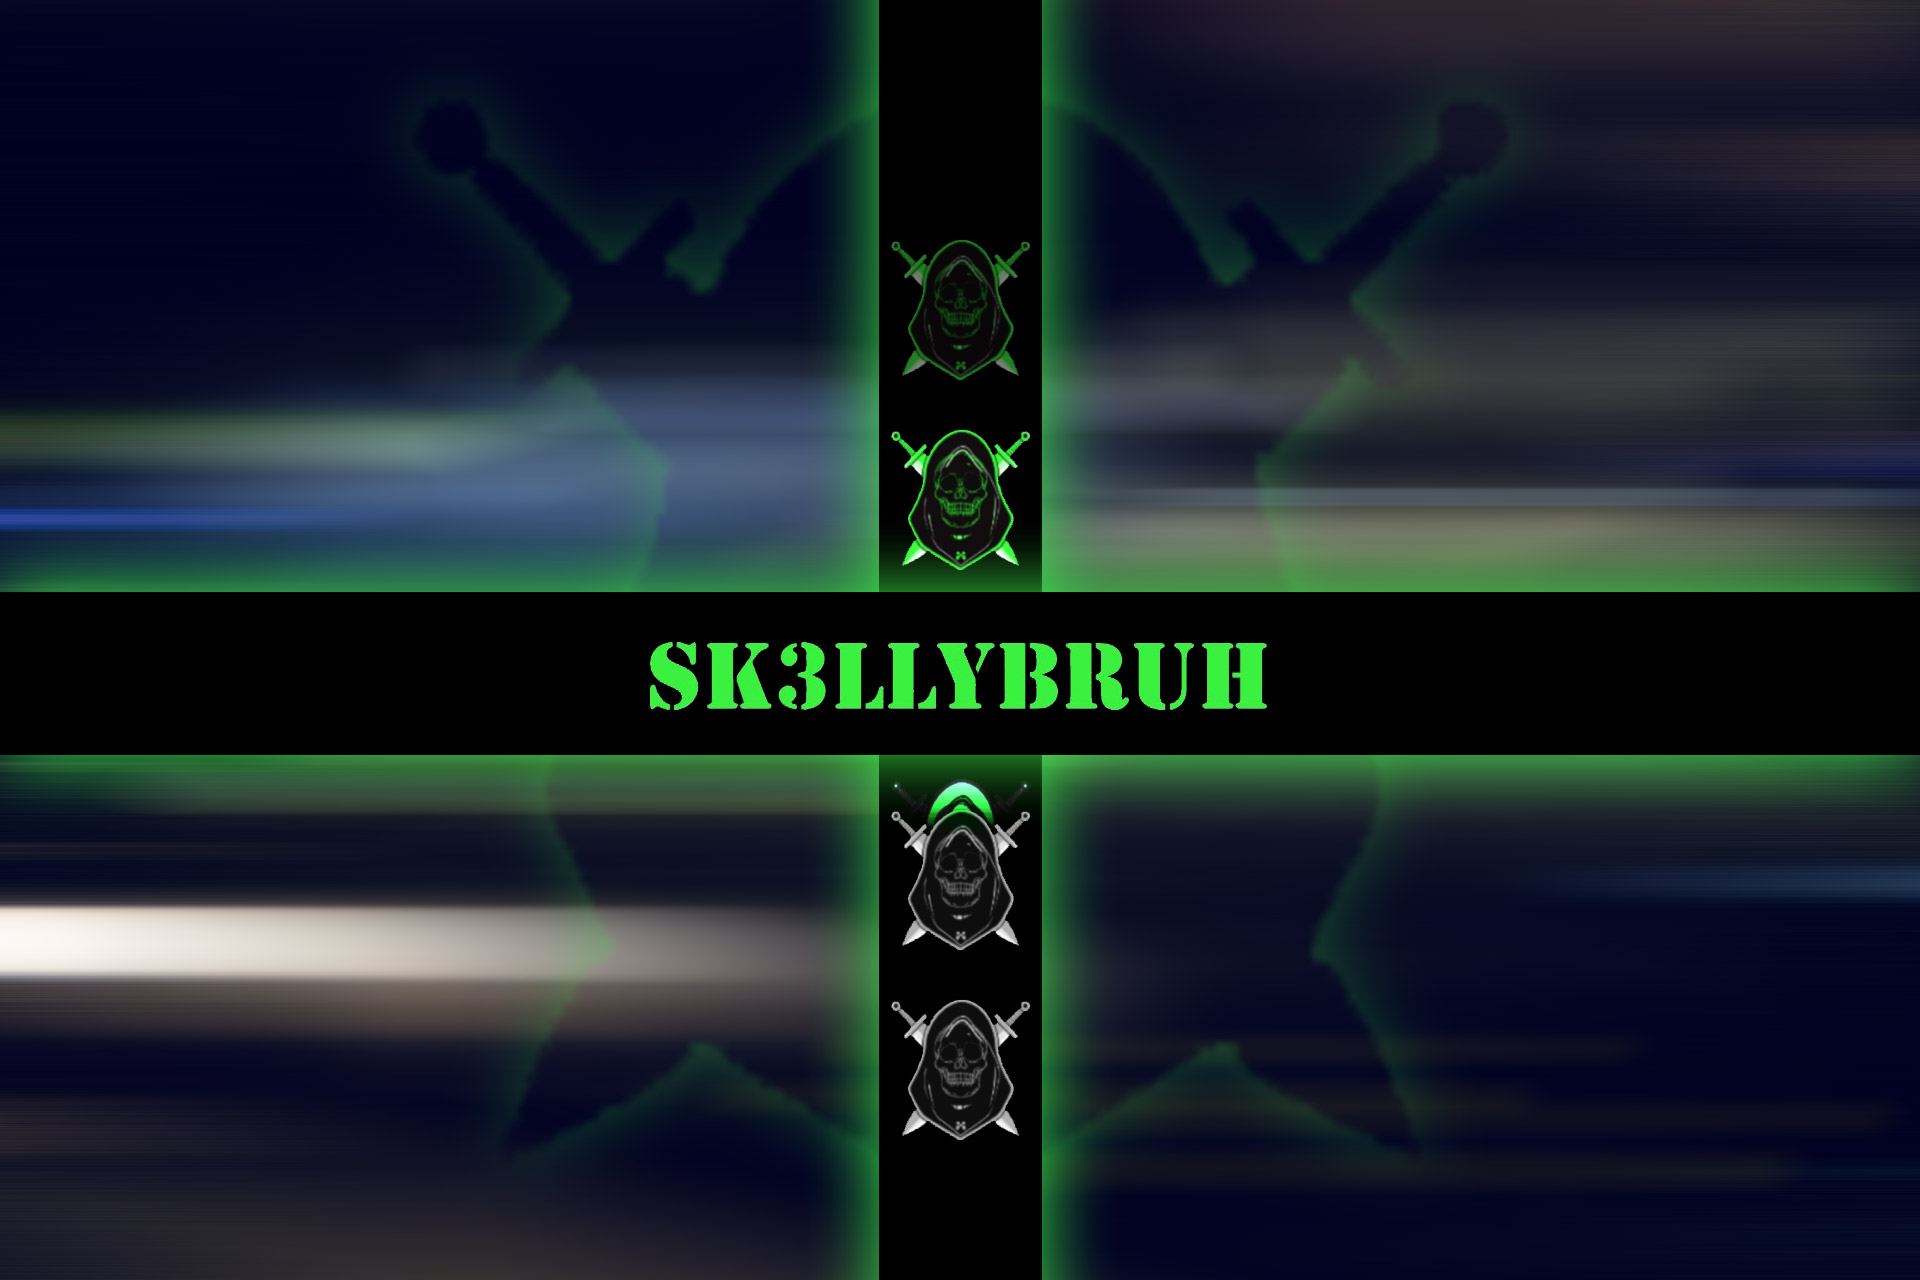 Sk3llybruh - How The Ultimate Fan Made His Way to the DJ Booth